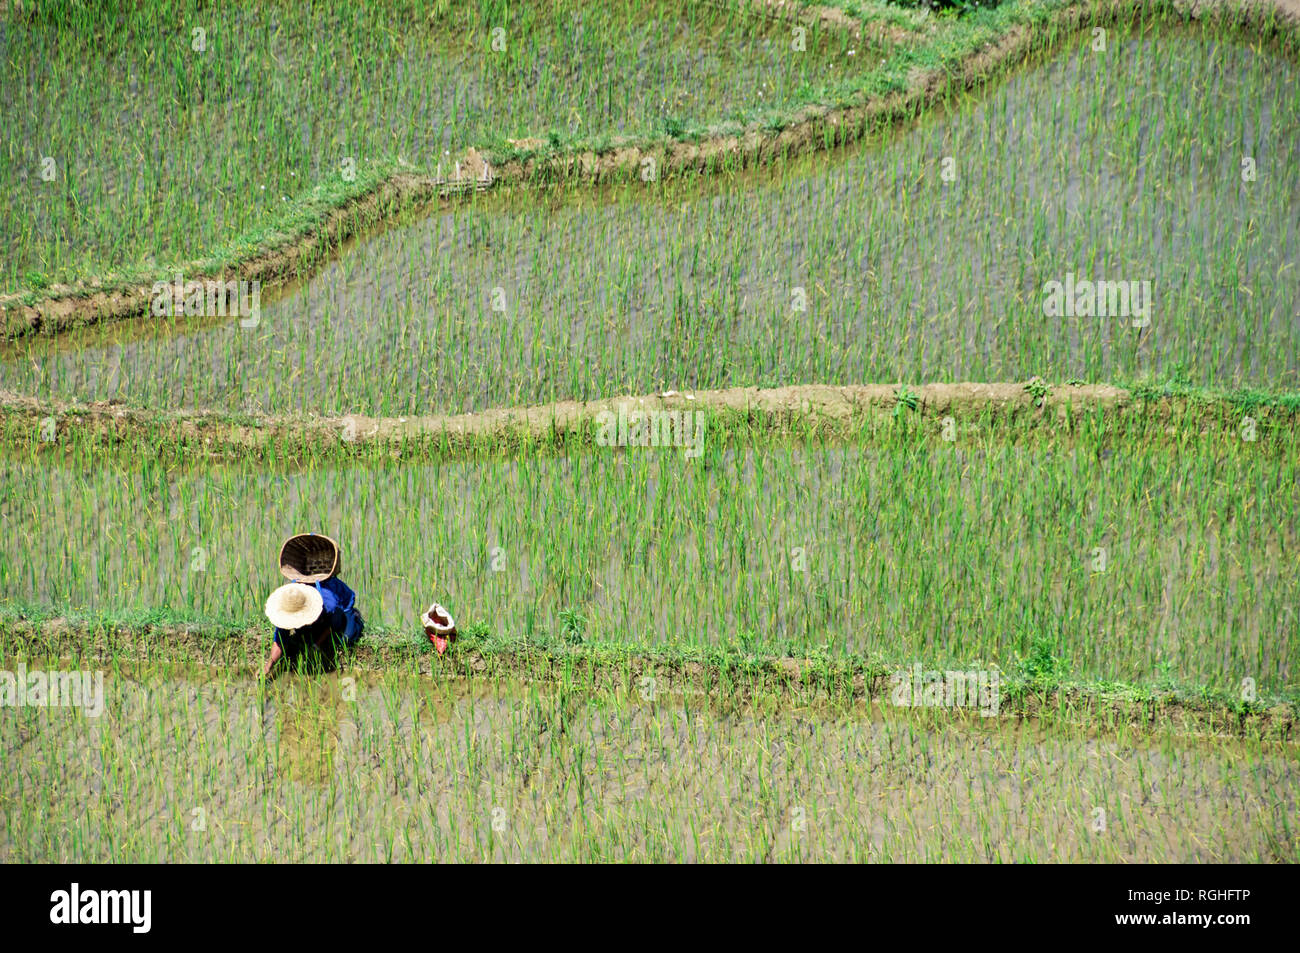 Rice Cultivation in Yuanyang Rice Terraces - Stock Image